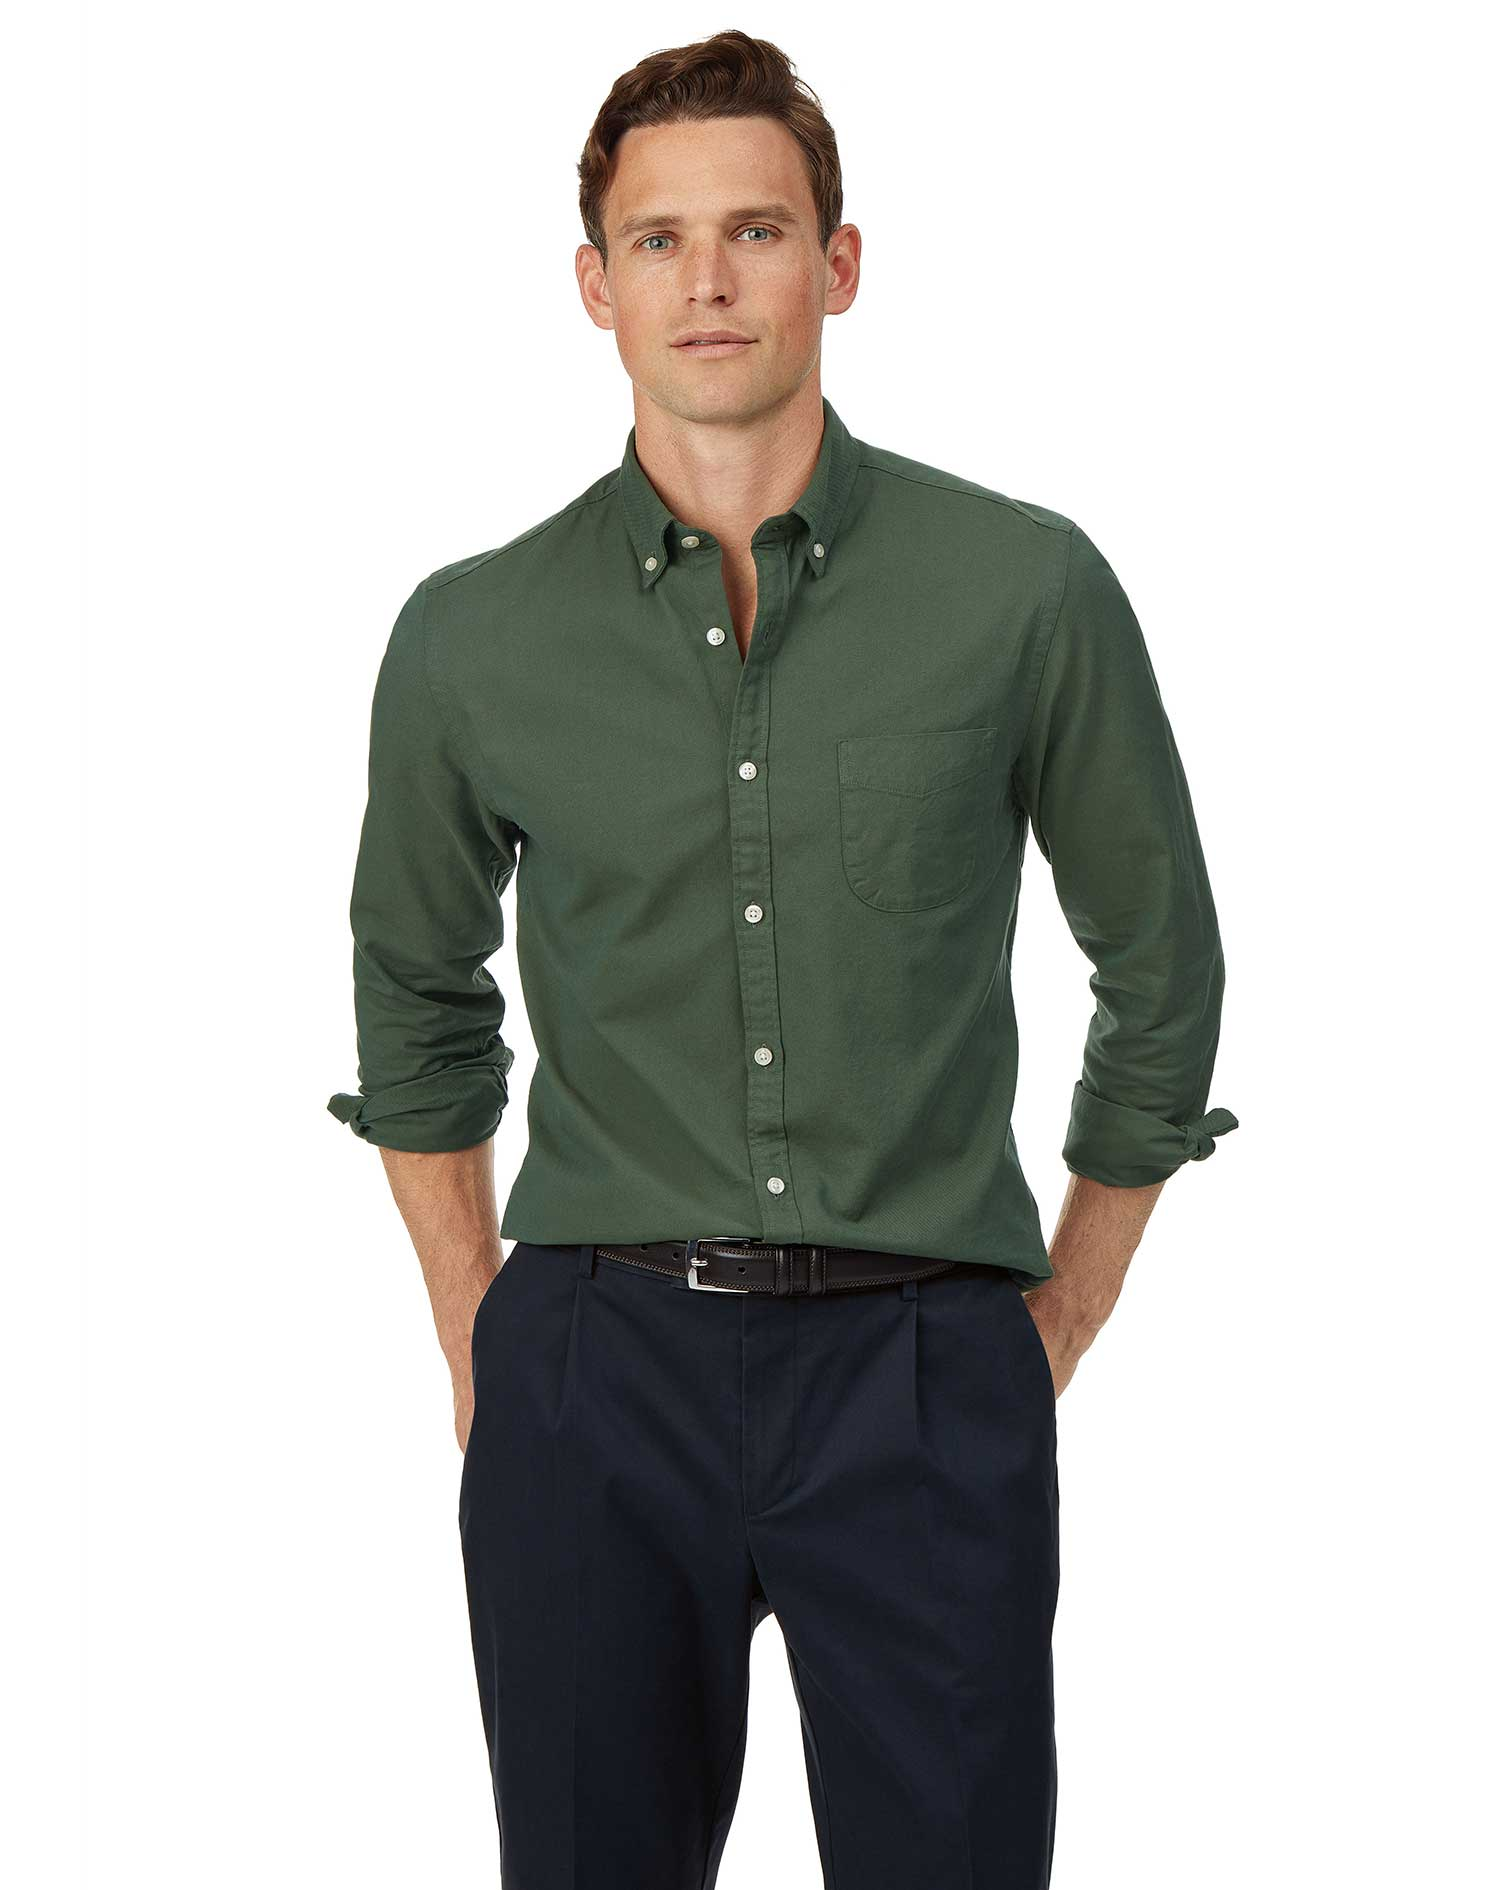 Cotton Extra Slim Fit Button-Down Washed Oxford Green Shirt